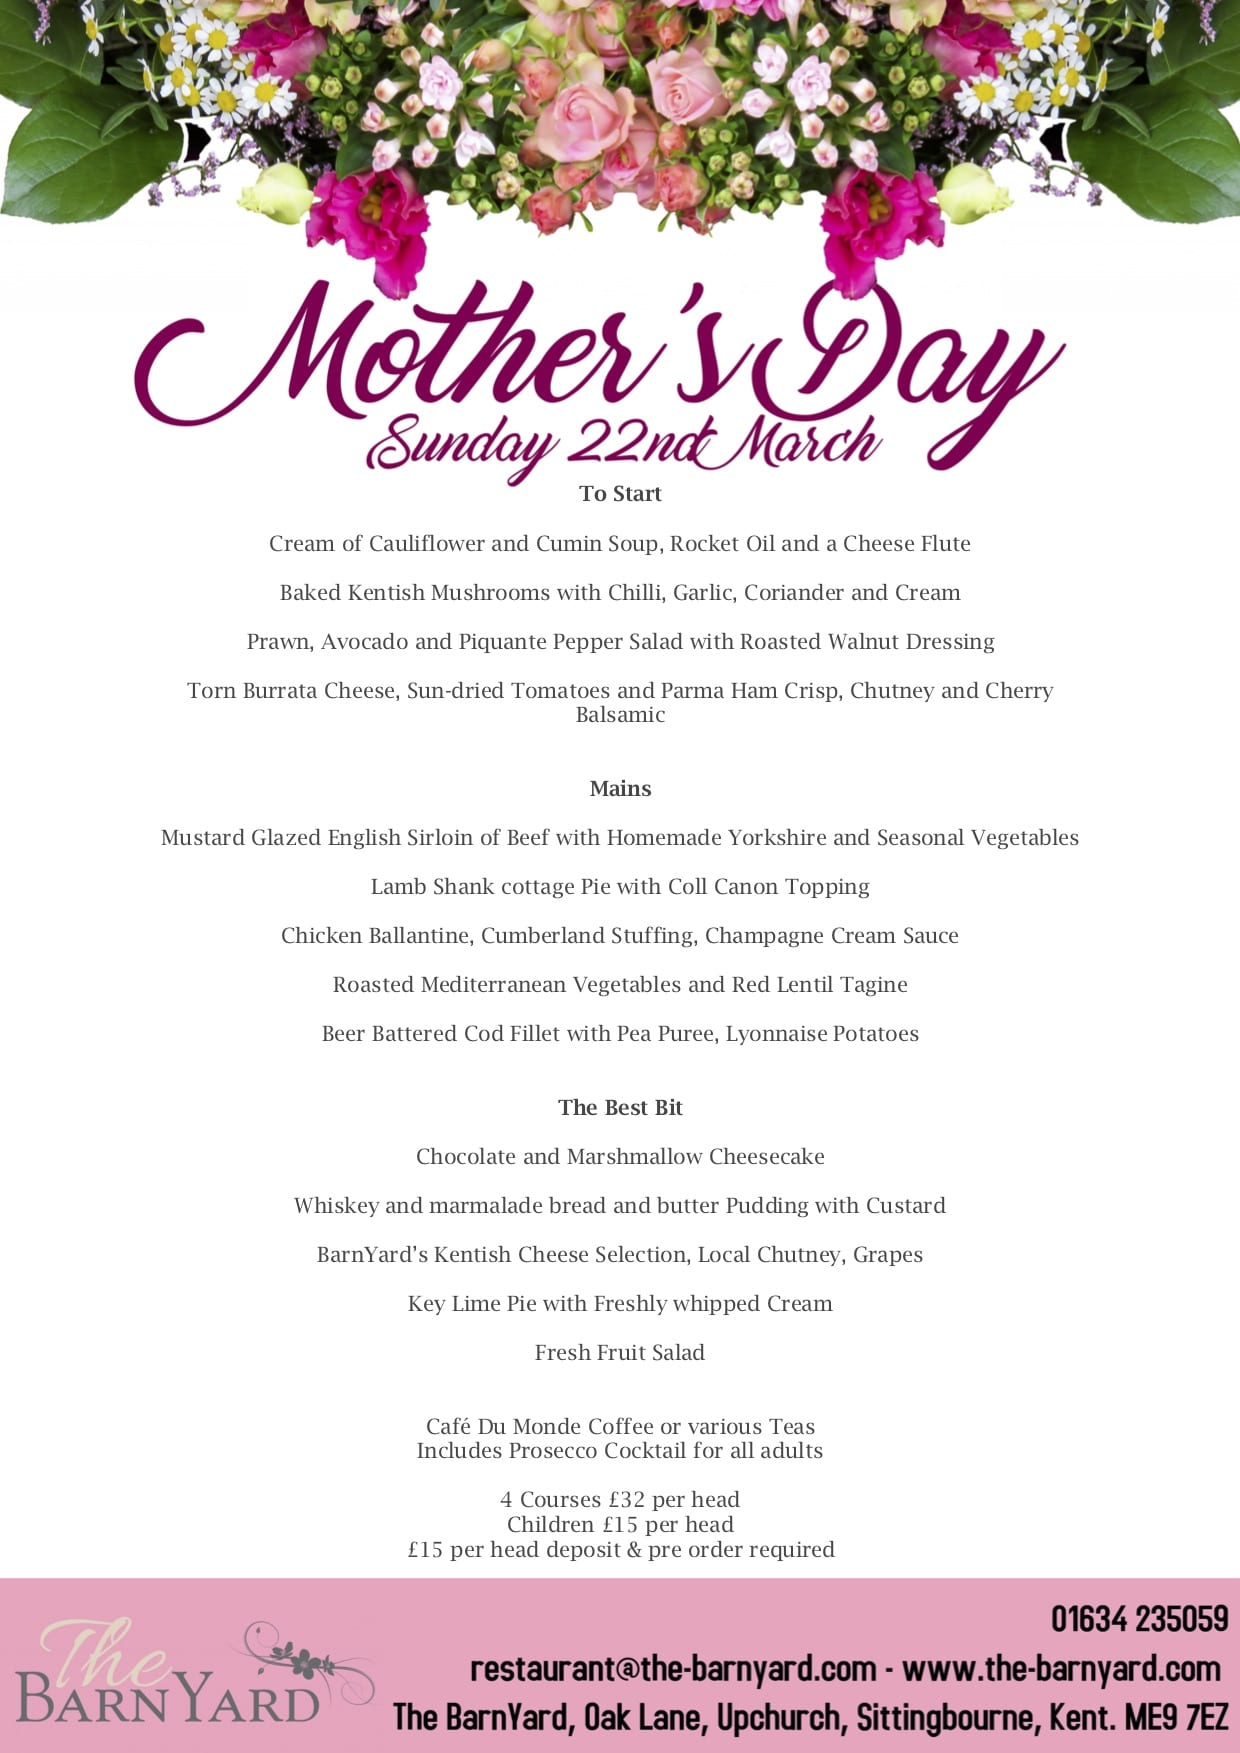 Mother's Day Menu at The BarnYard